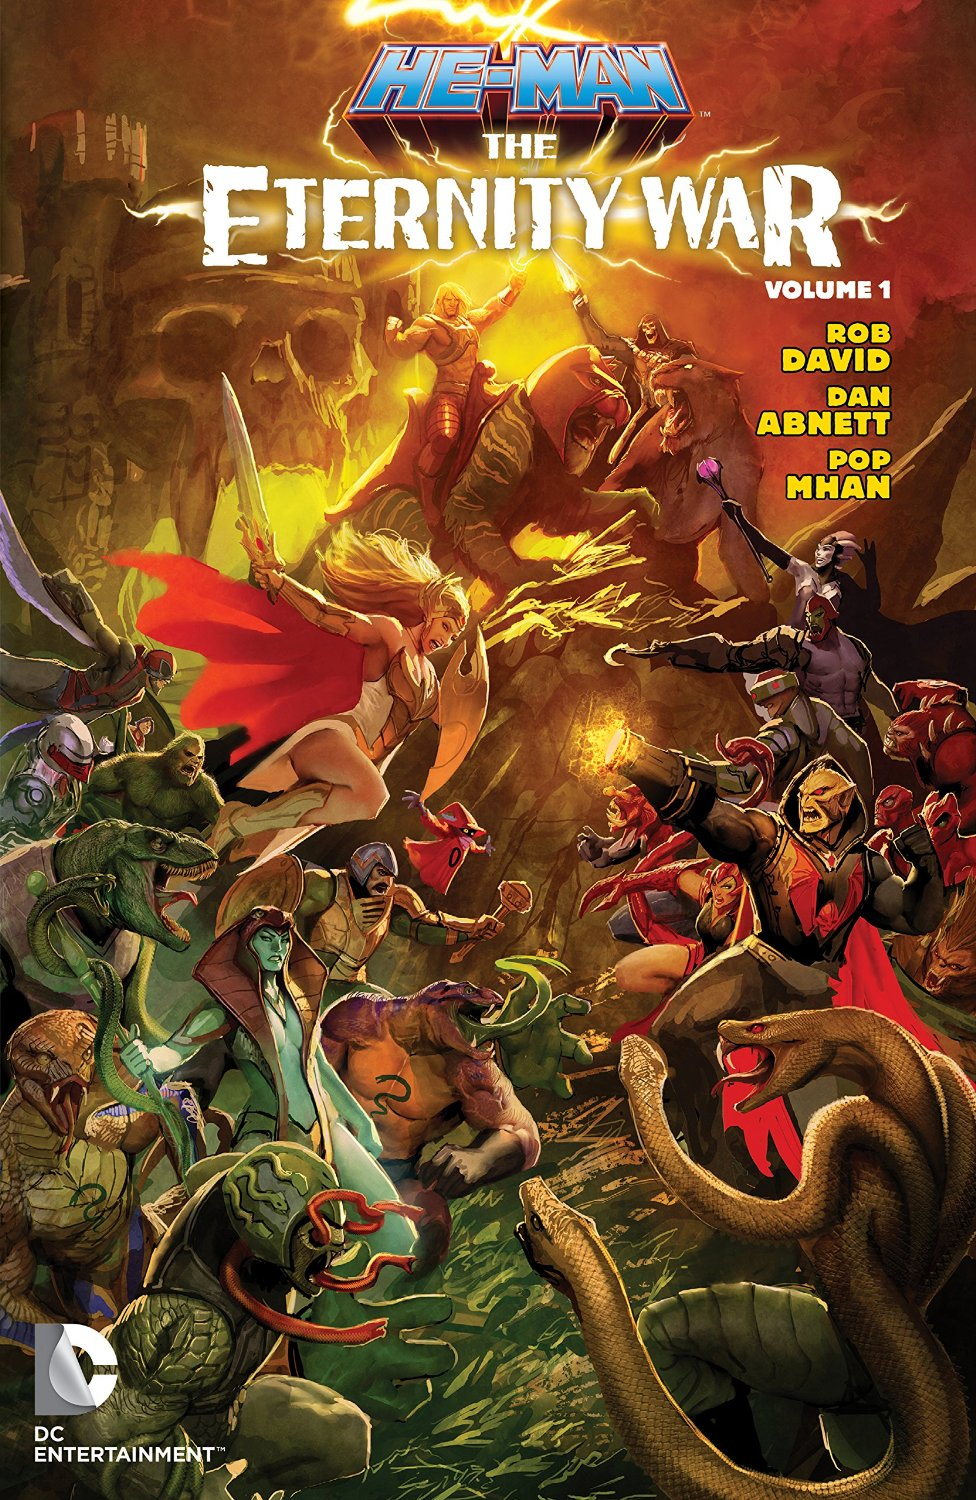 He-Man: The Eternity War Vol. 1 (Collected)